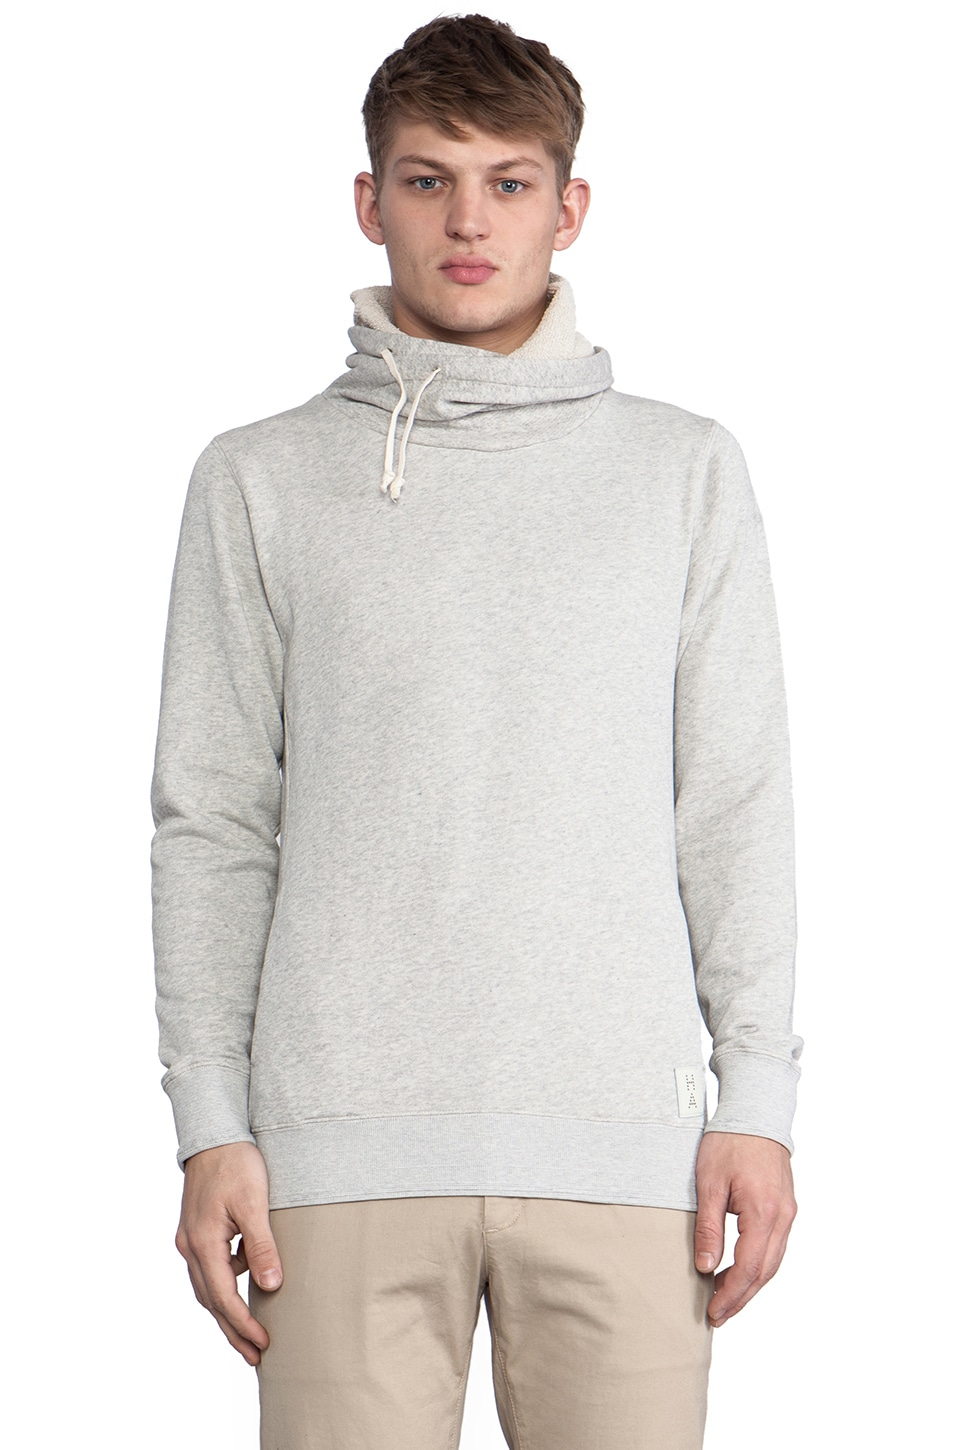 Scotch & Soda Home Alone Twisted Neck Hoody in Grey